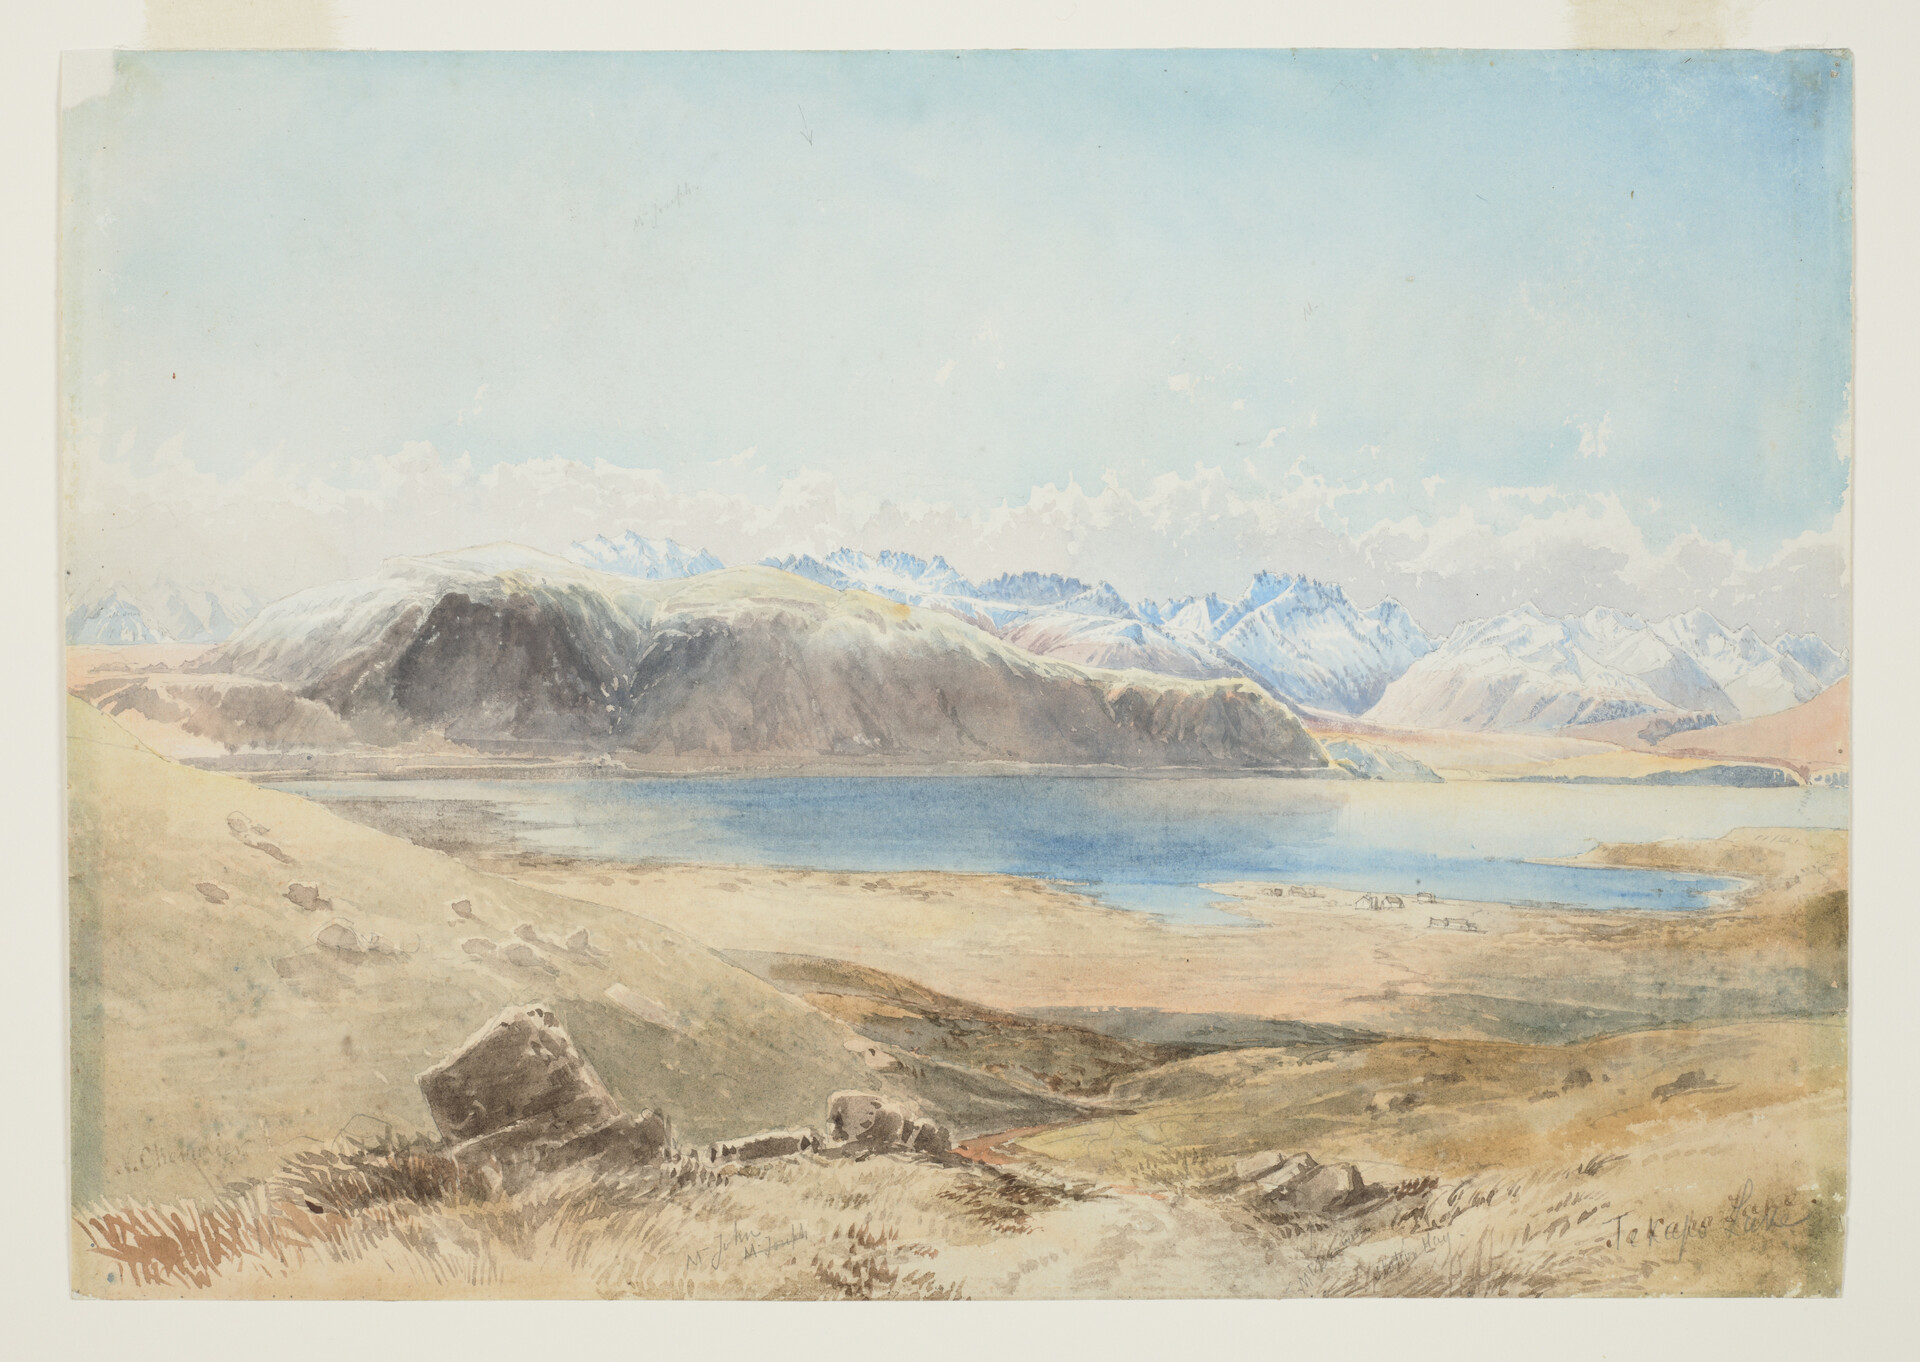 Lake Tekapo - Nicholas Chevalier Watercolour